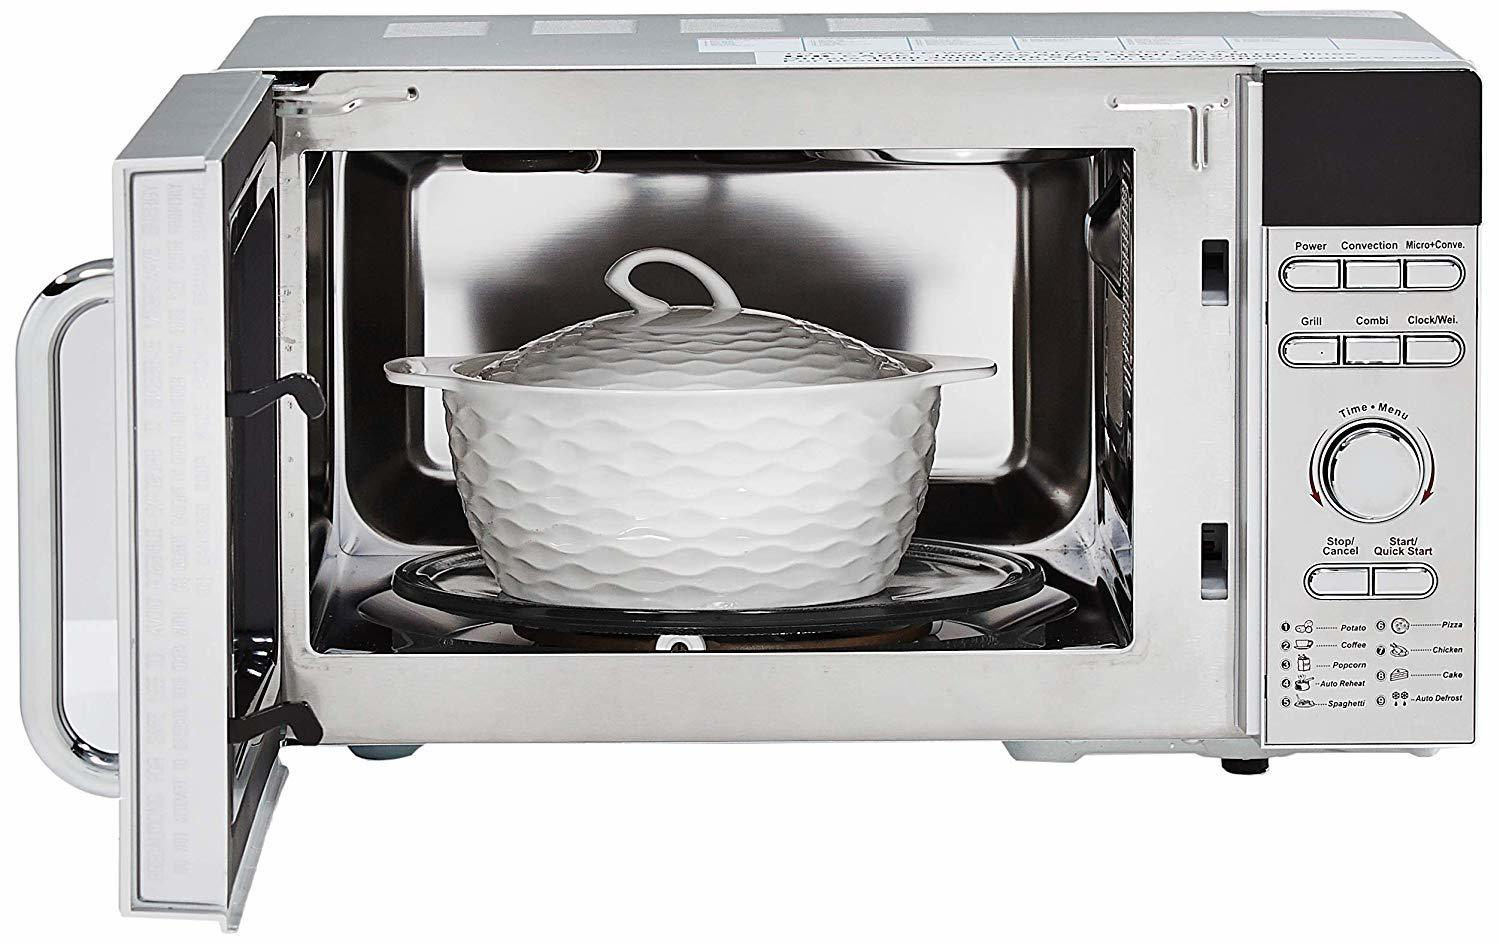 IFB 20 L Convection Microwave Oven (20SC3, Metallic Silver)